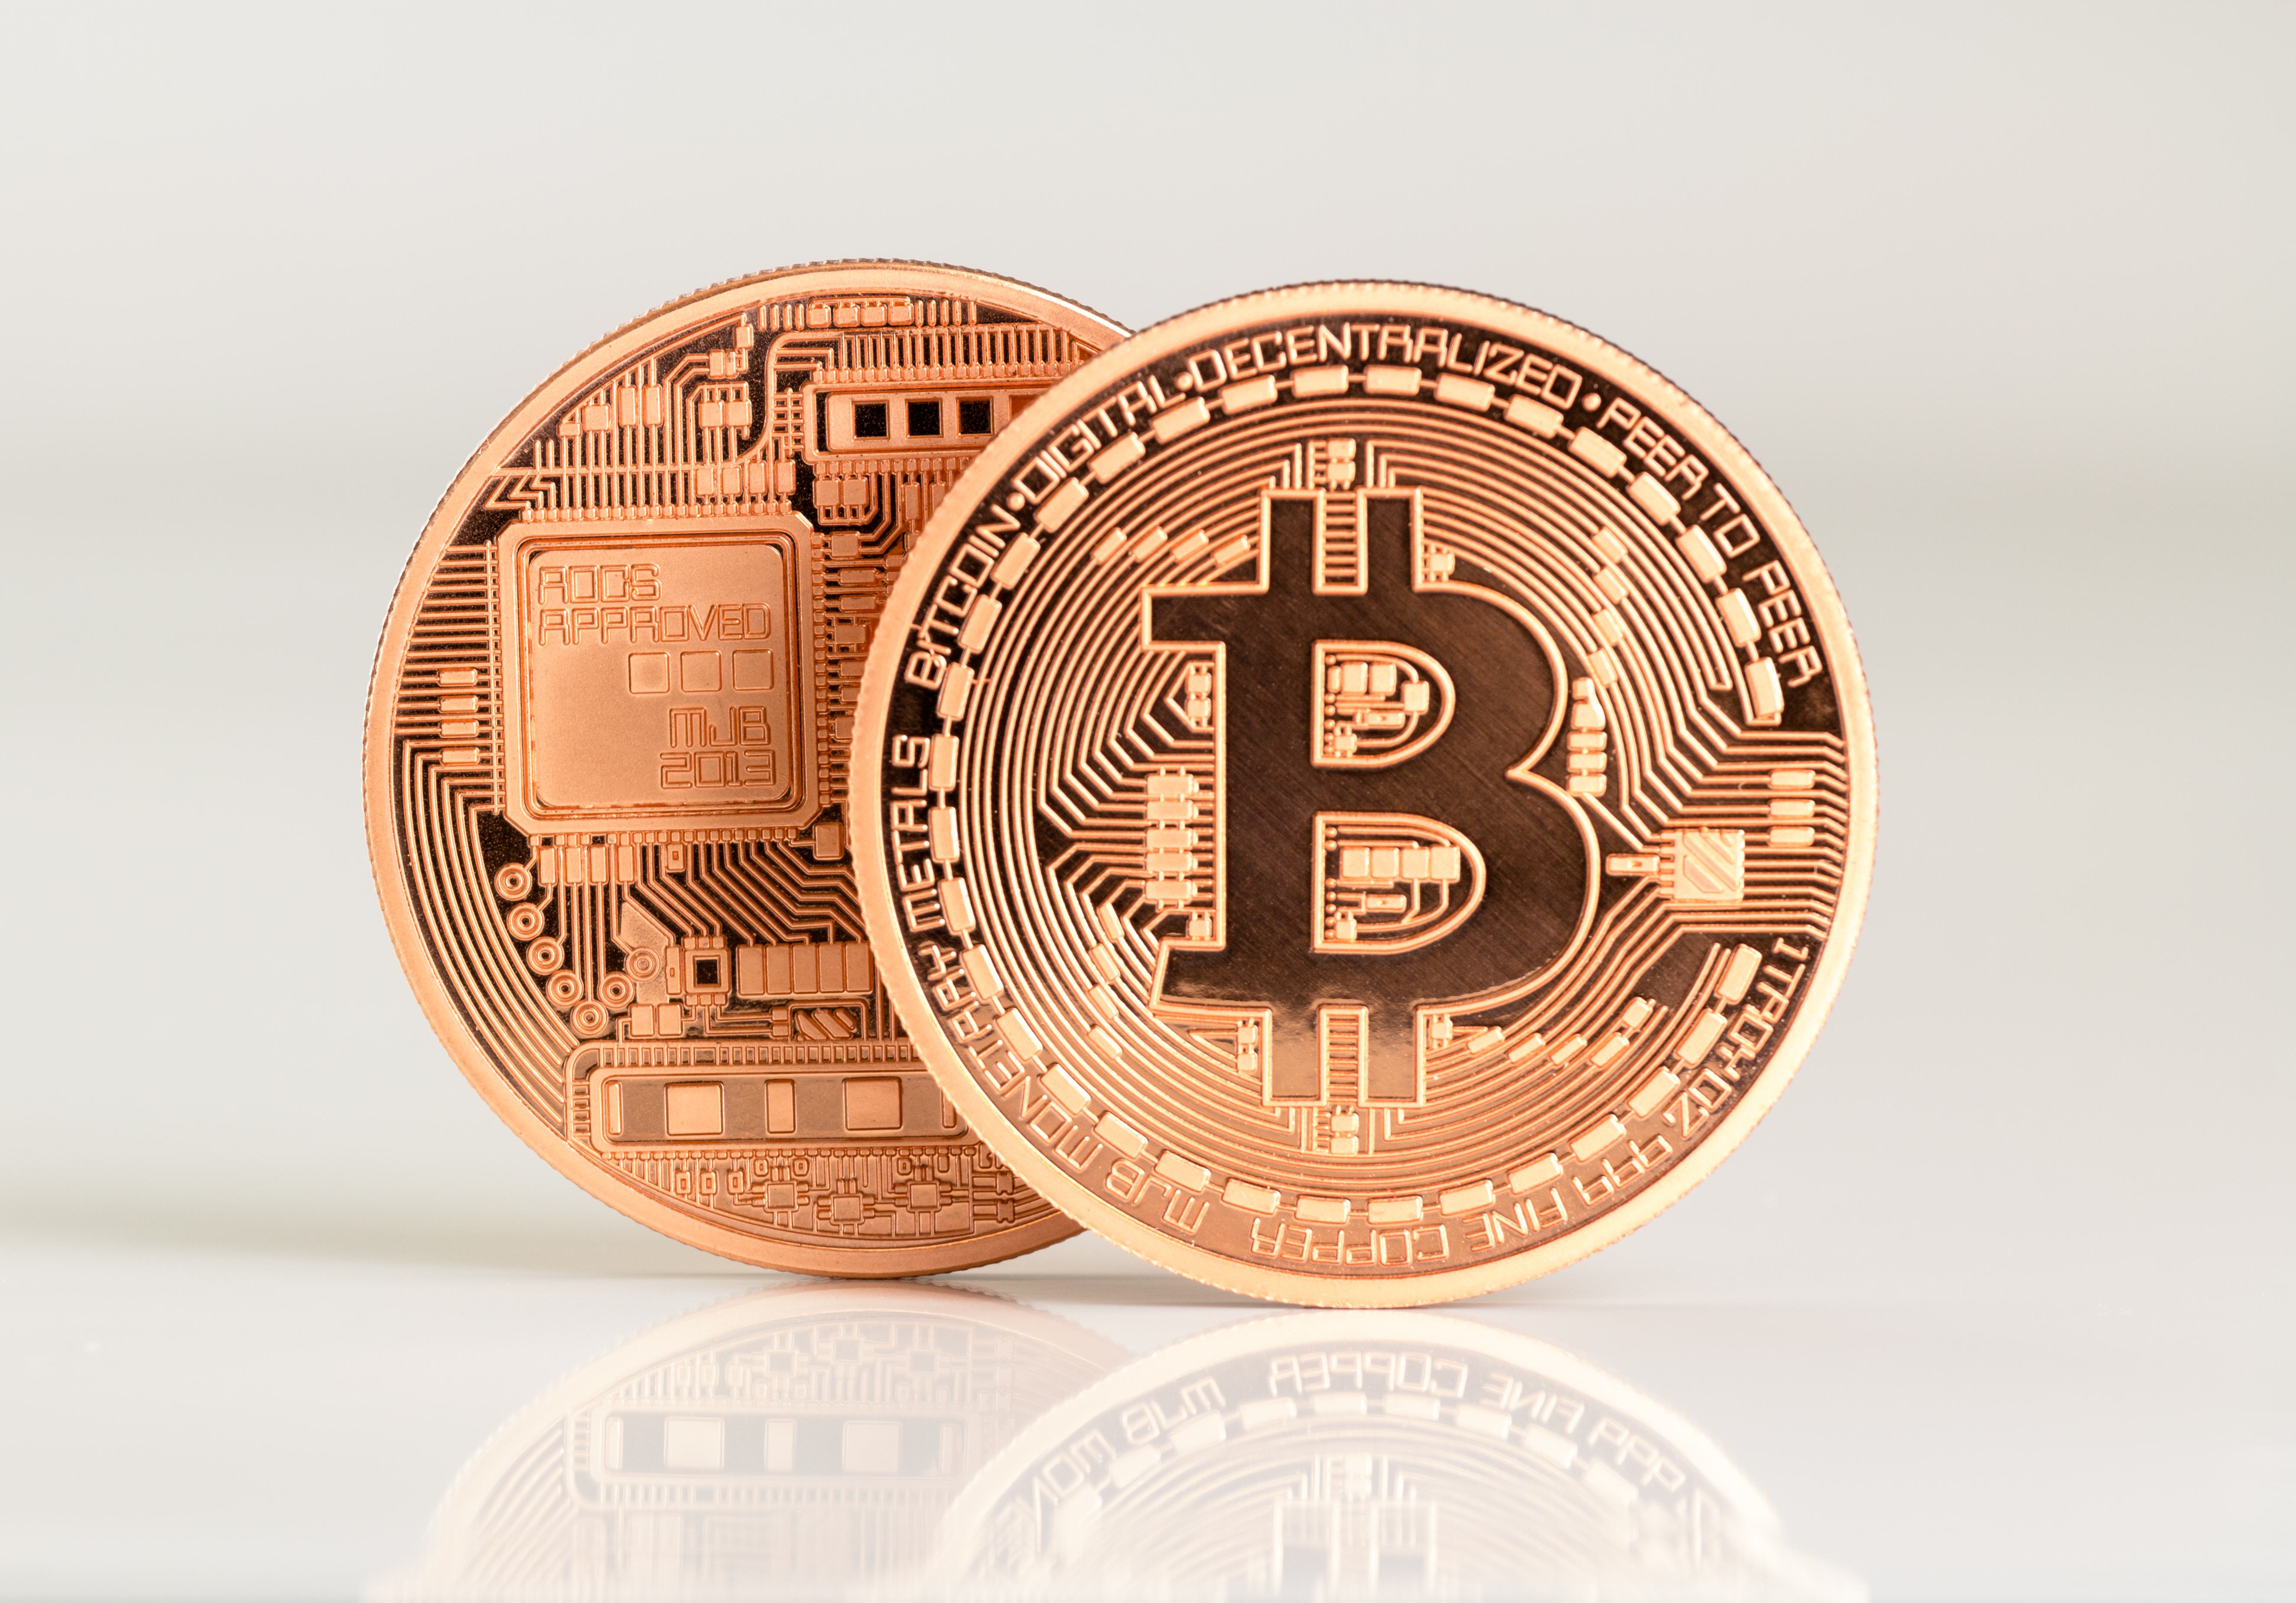 This week in bitcoin: FinCEN guidelines label exchanges, payments processors as money transmitters